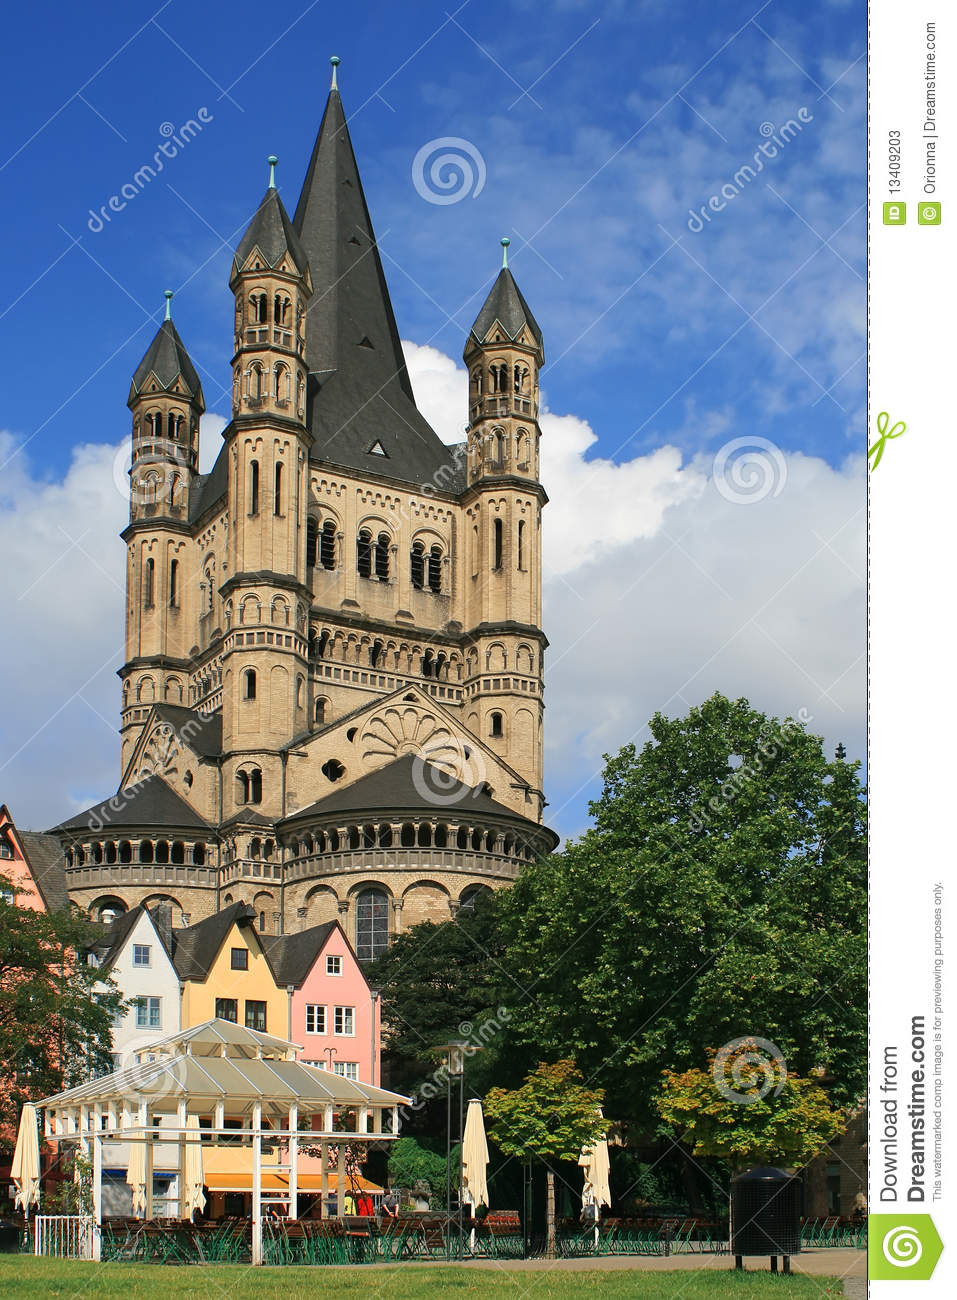 Historical Stock Prices >> A Castle In Frankfurt, Germany Stock Photos - Image: 13409203